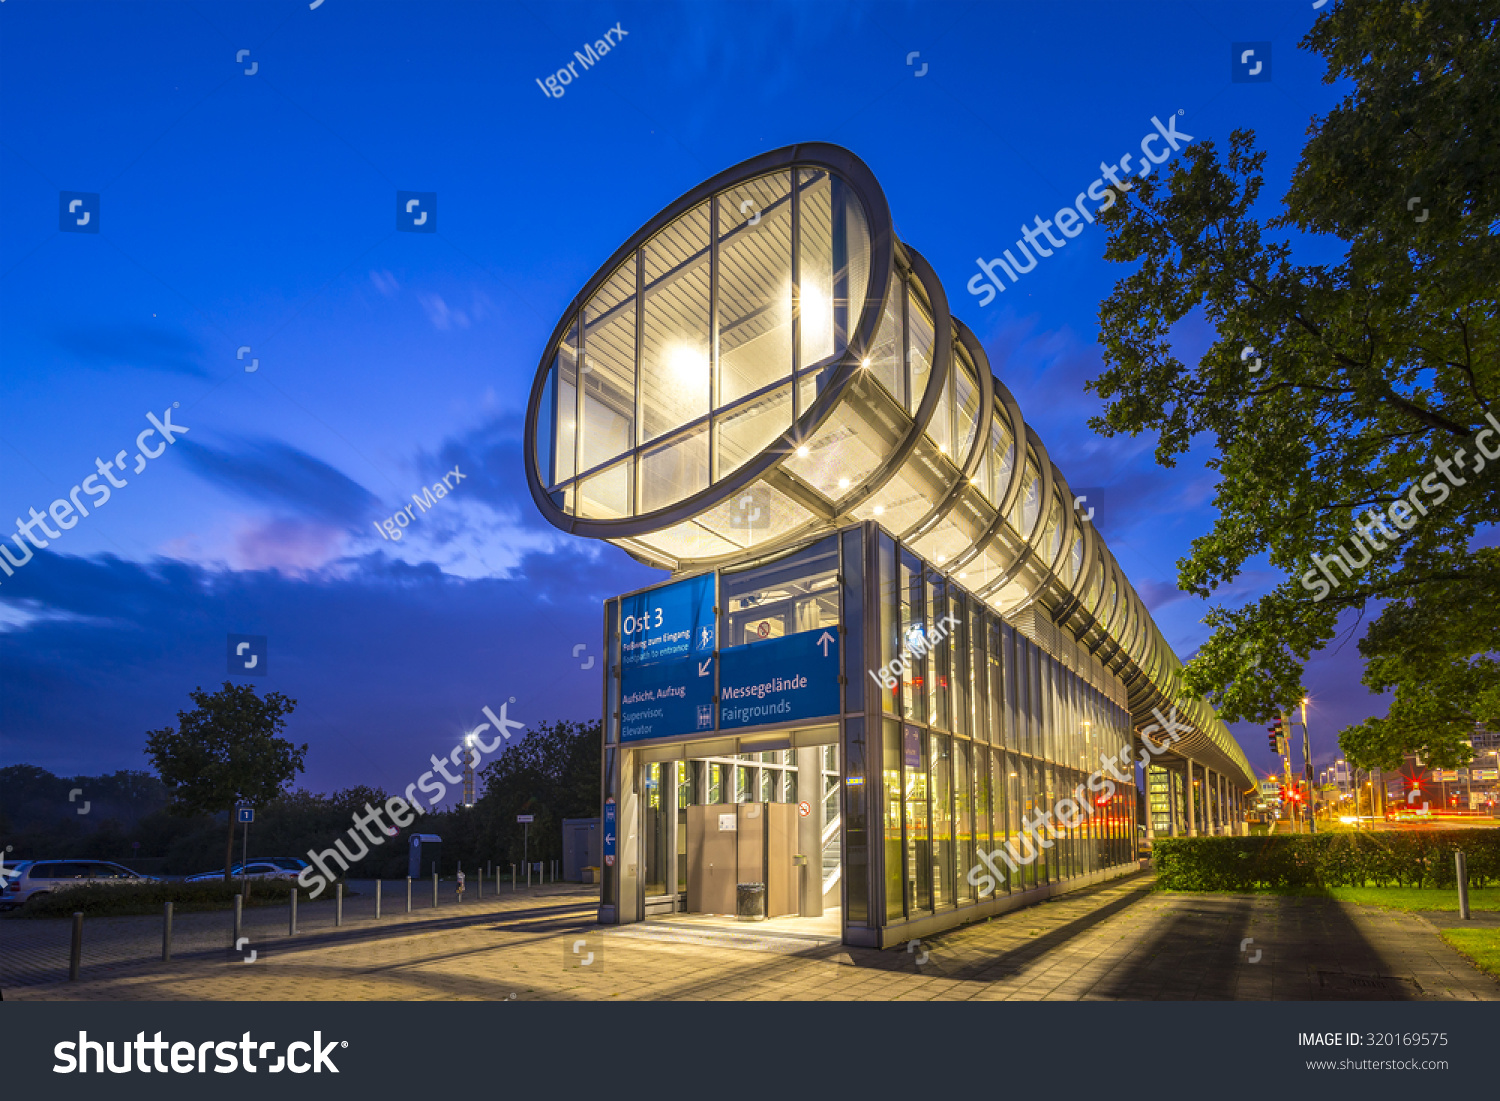 Expo Plaza Hannover Hannover Germany September 19 2015 Expo Stock Photo Edit Now